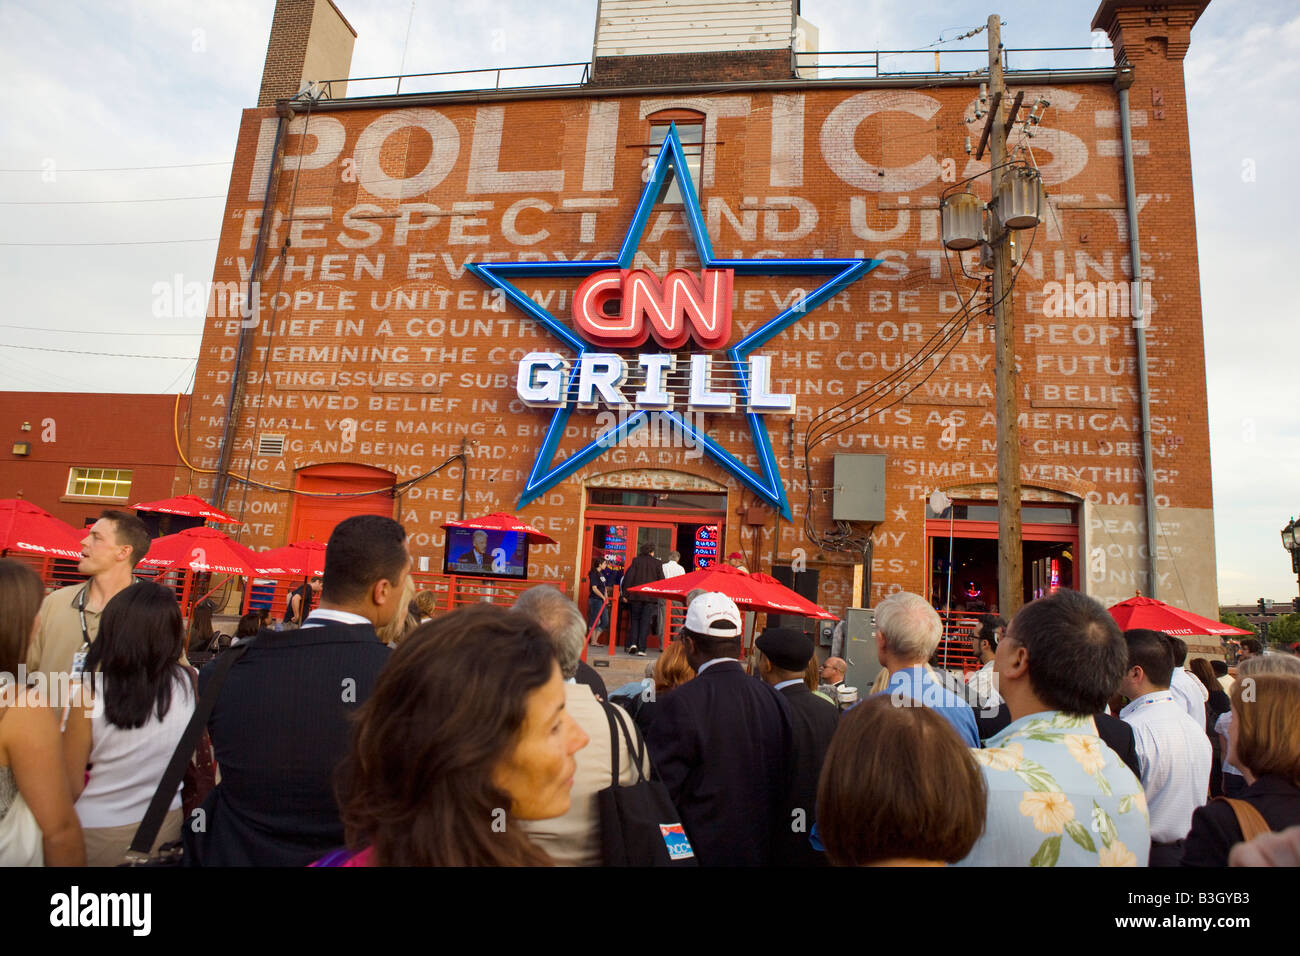 CNN Grill in Denver CO during the Democratic National ConventionStock Photo